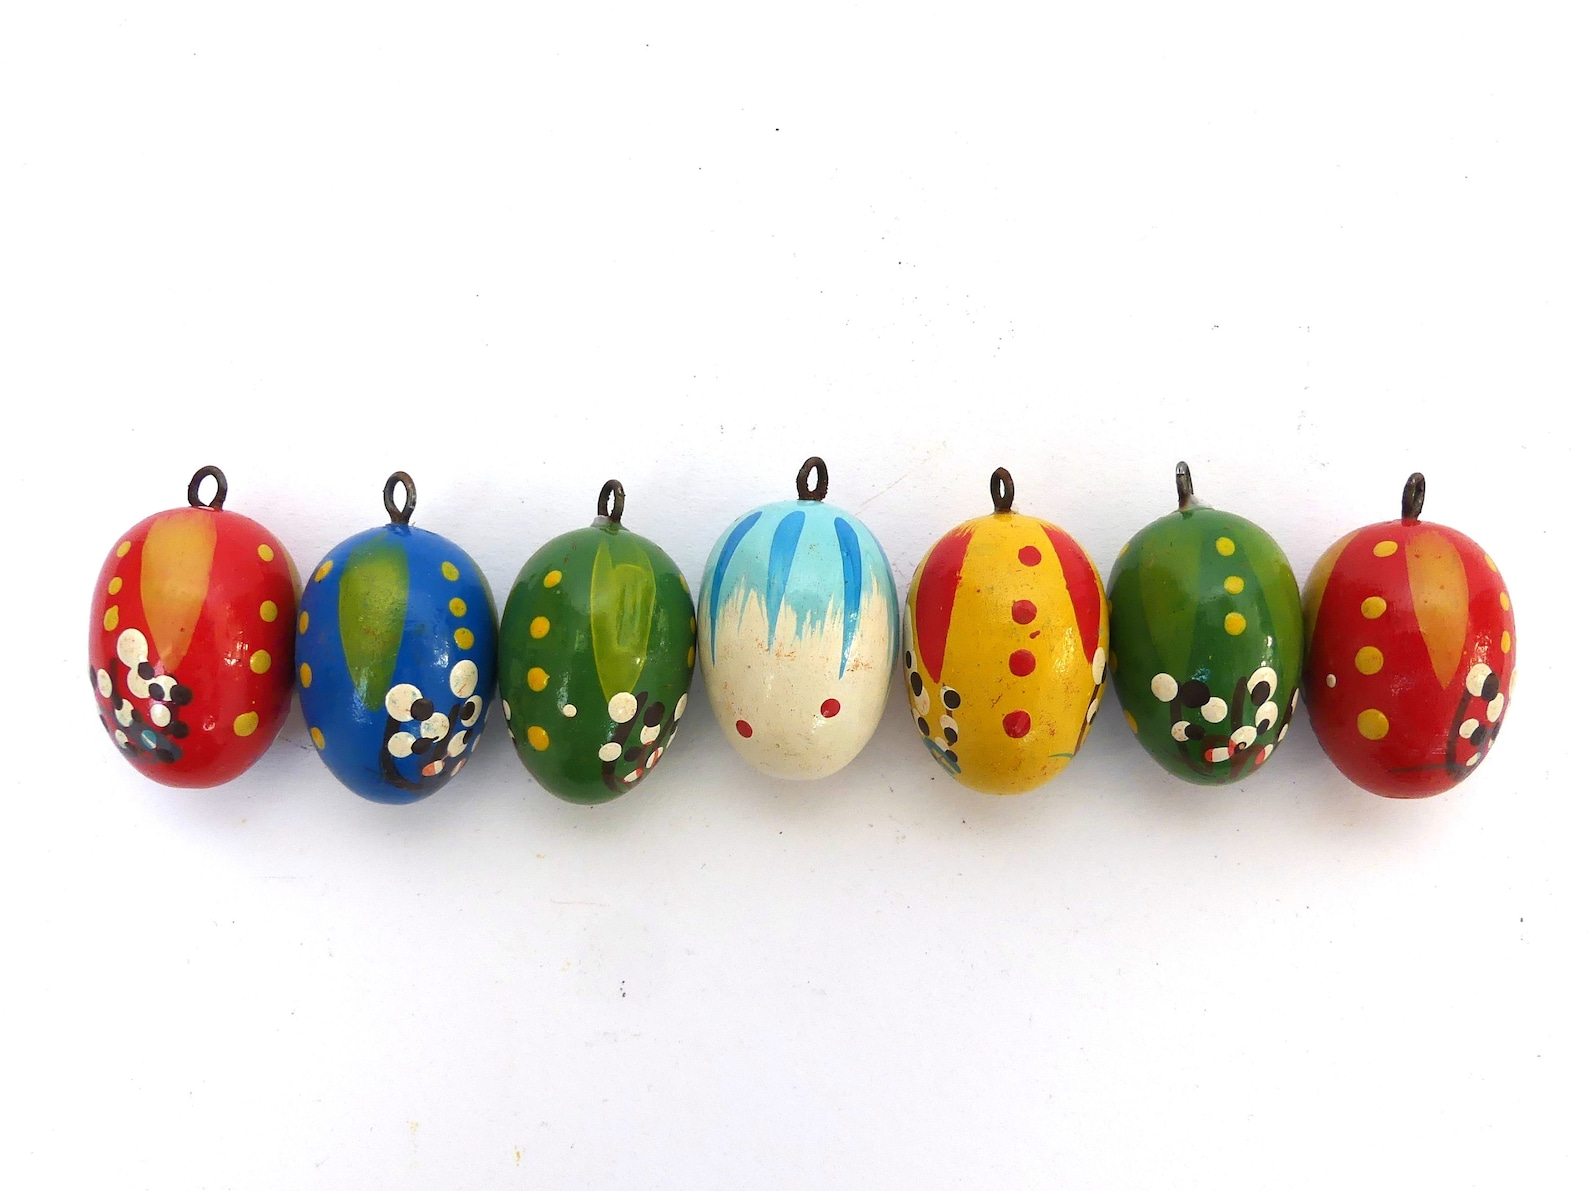 Wood Easter Eggs Ornaments Wooden Erzgebirge Miniatures Wood Easter Ornaments Rustic Spring Decor Germany Blue Red Green Green